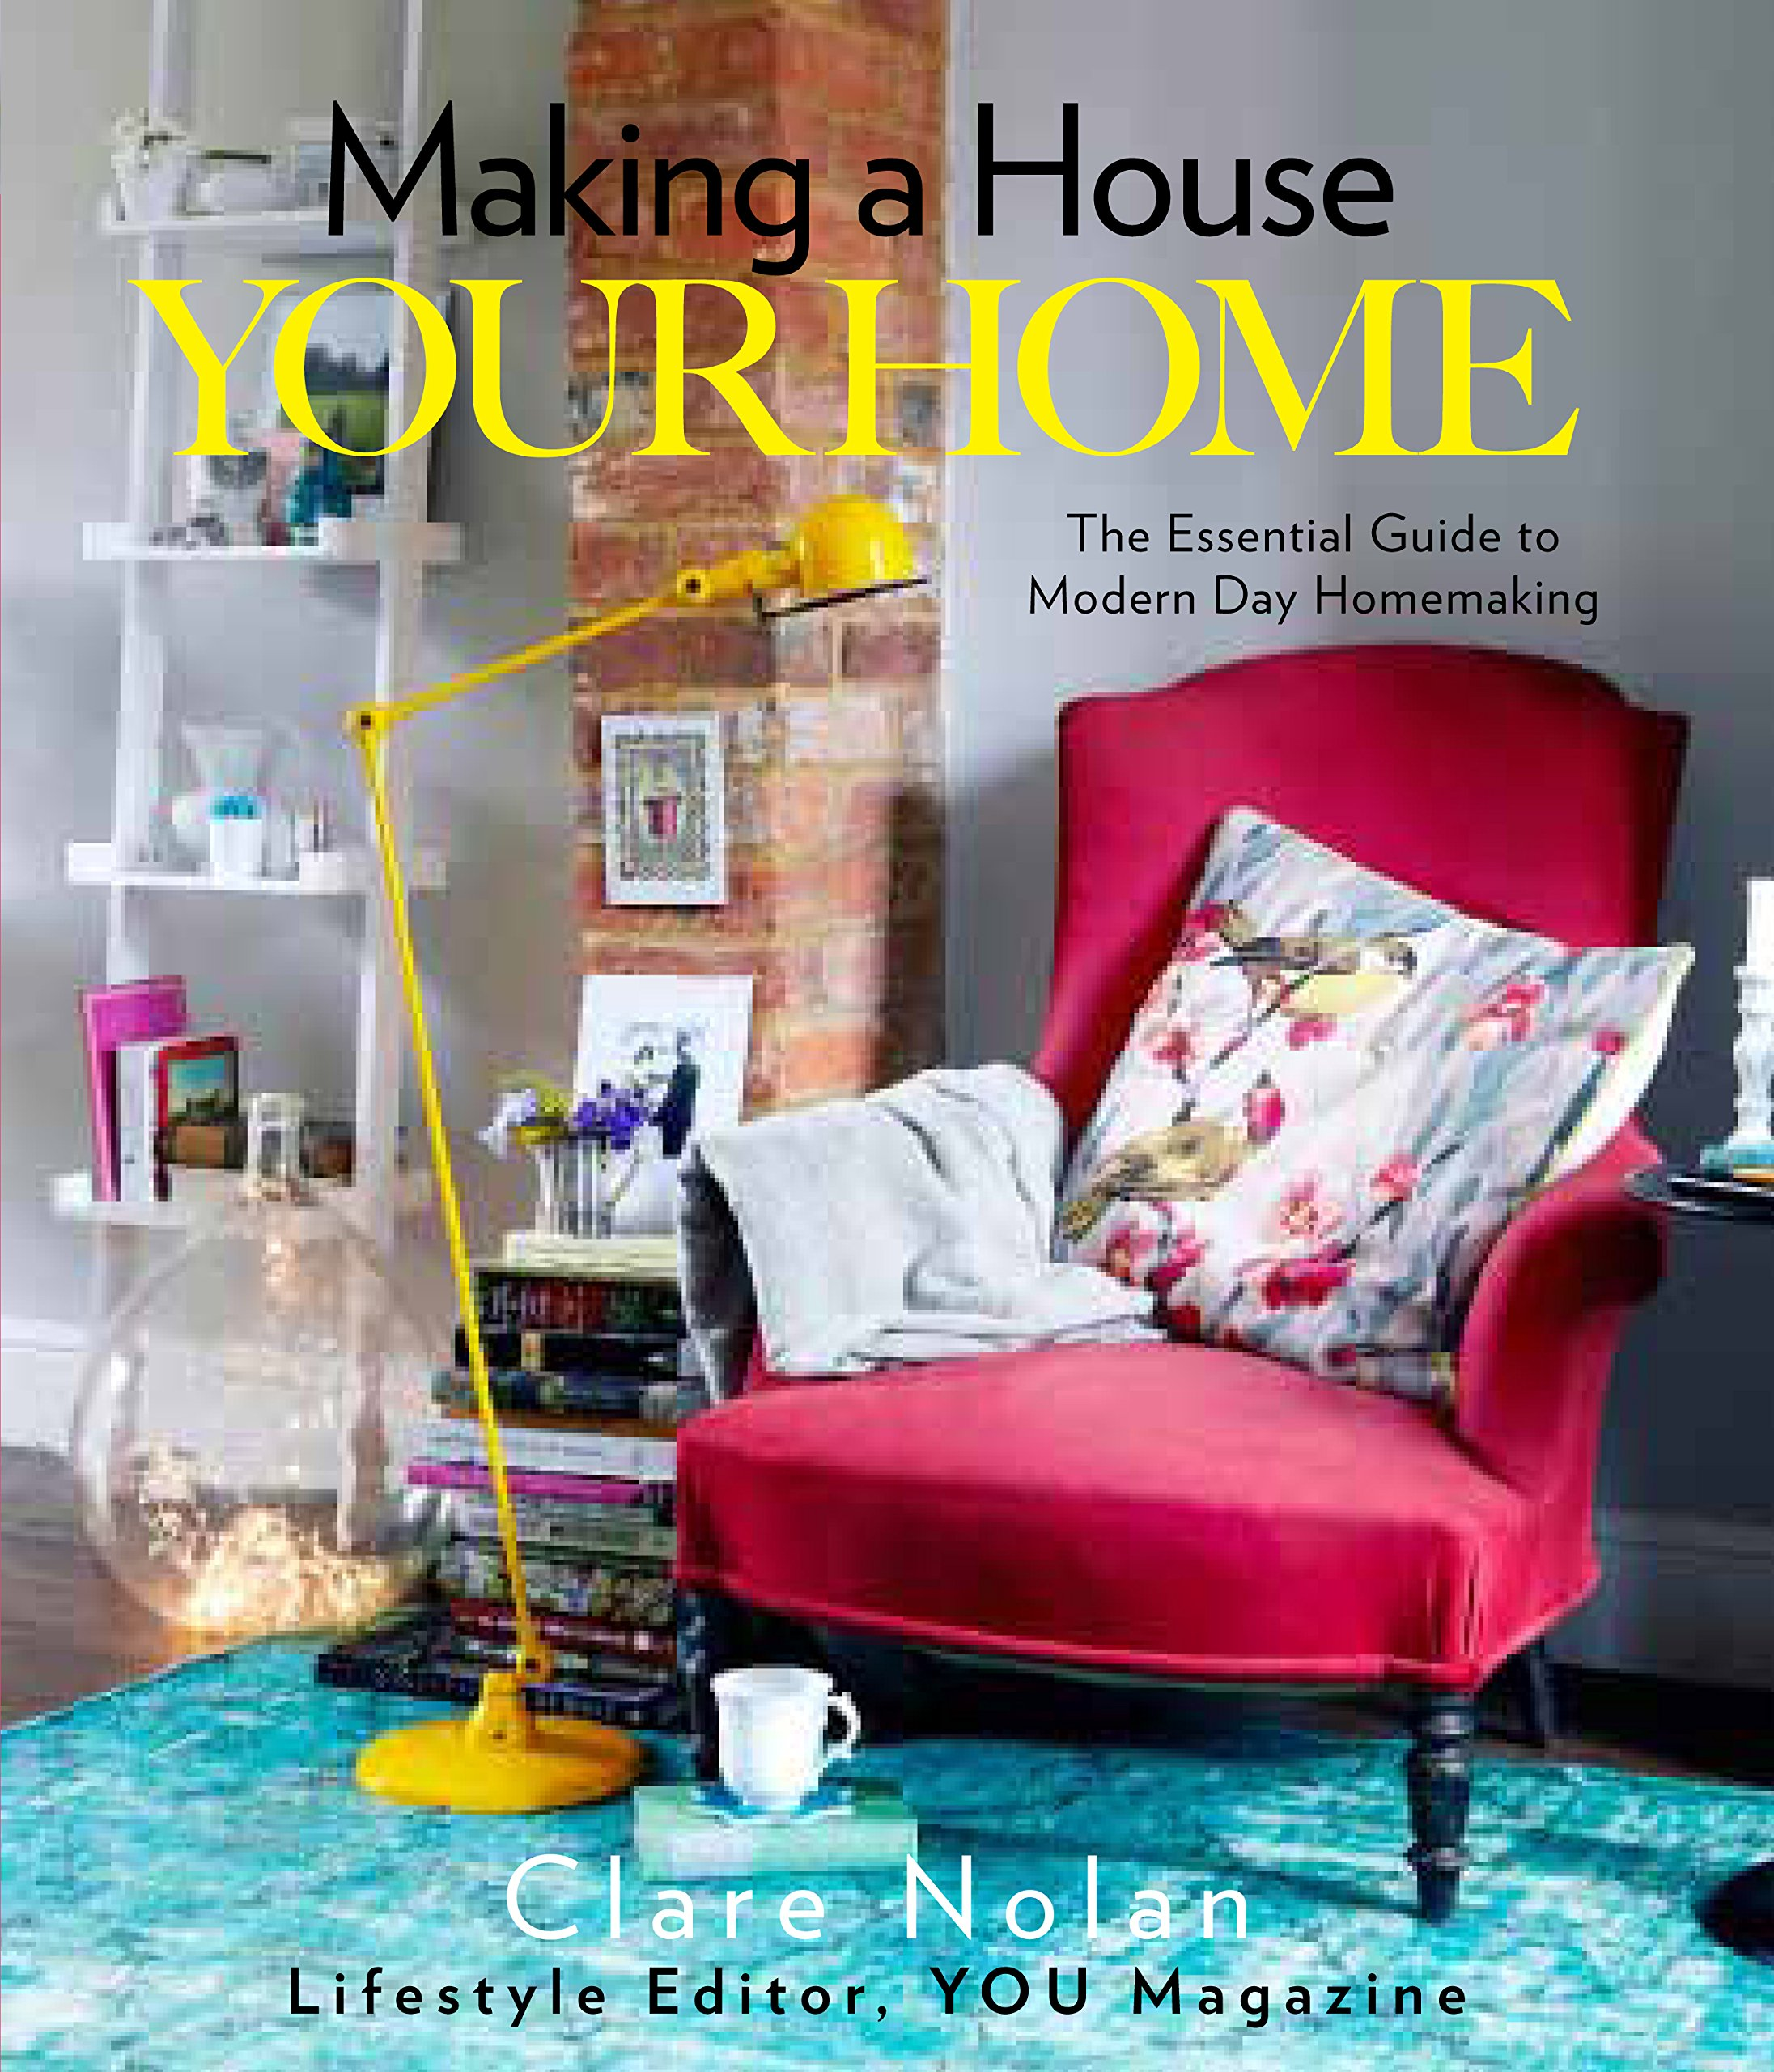 Making a House Your Home: Amazon.co.uk: Clare Nolan: Books